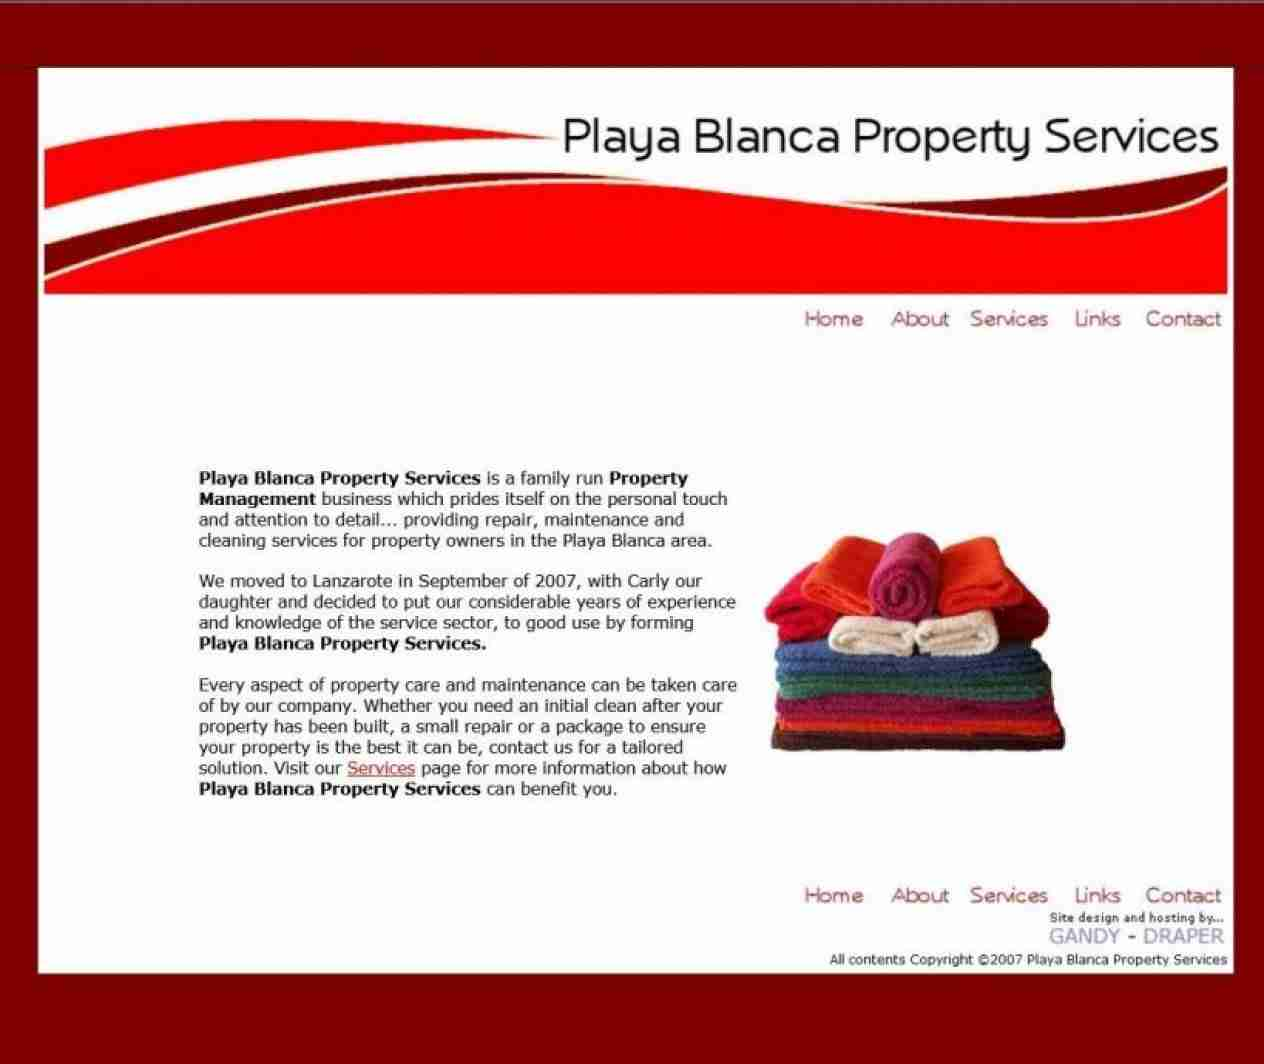 Playa Blanca Property Services